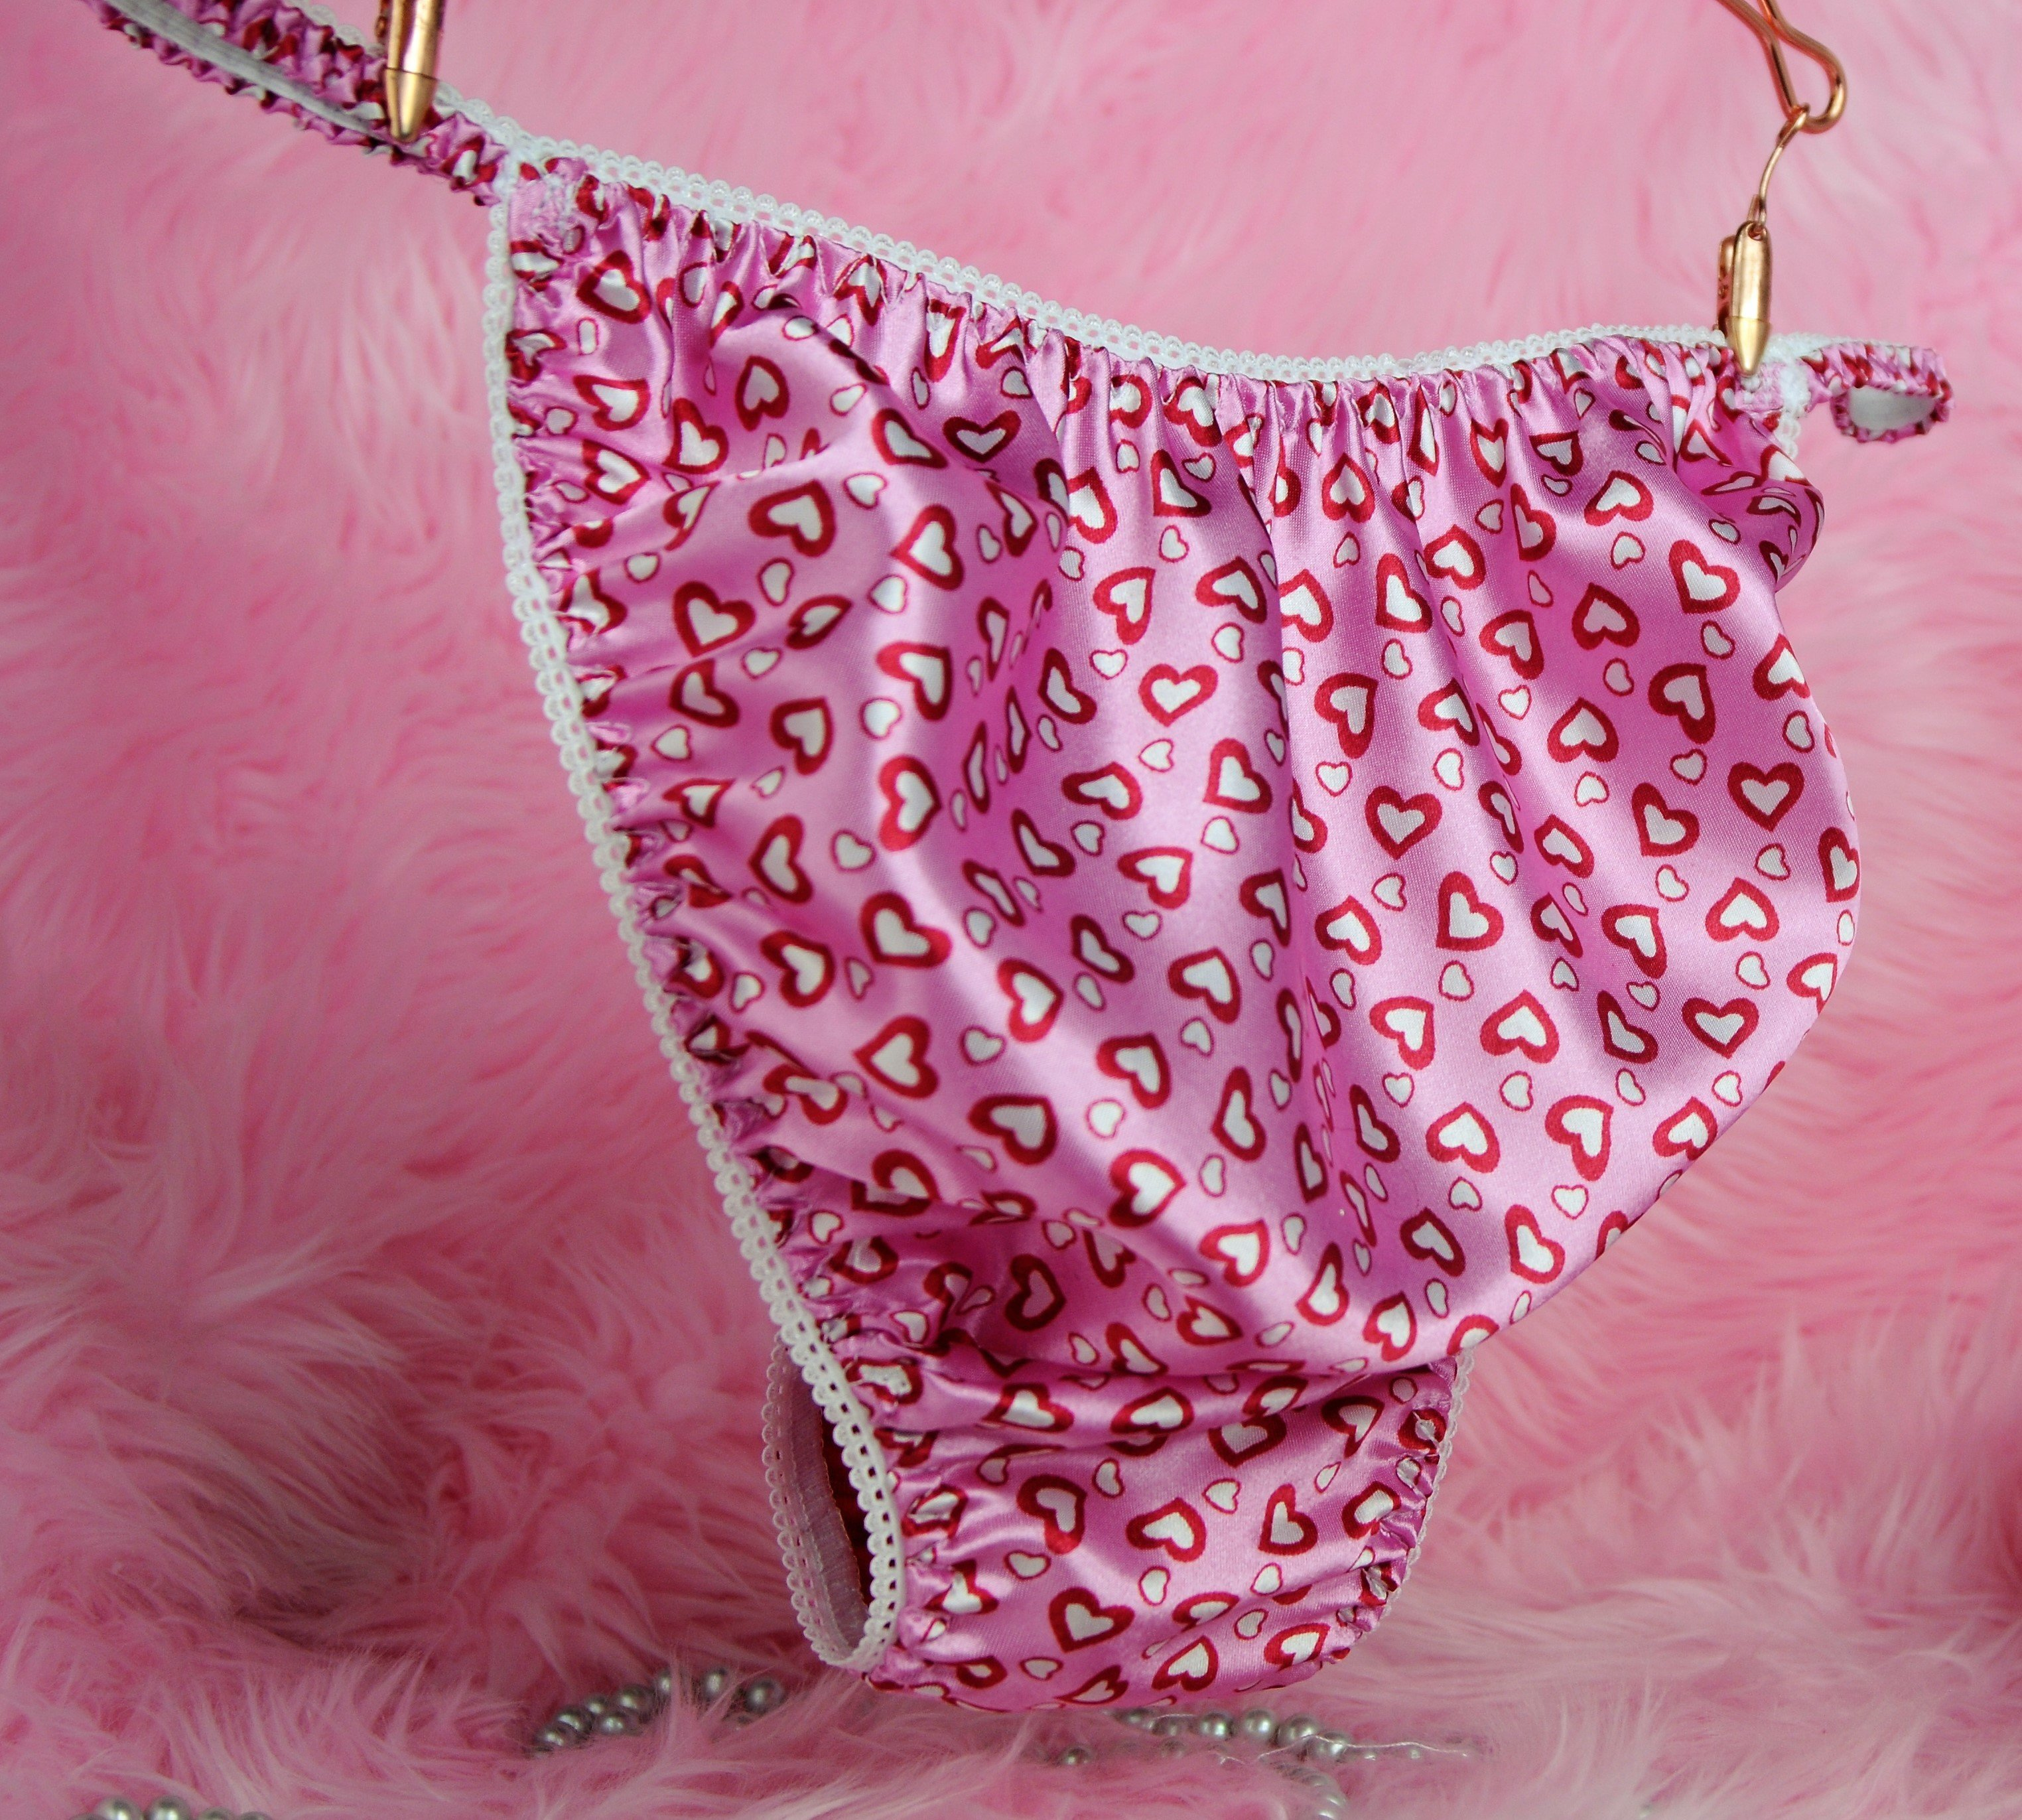 Ania's Poison MANties S - XXL Valentine's Day hearts Pink or Red 100% polyester string bikini sissy mens underwear panties